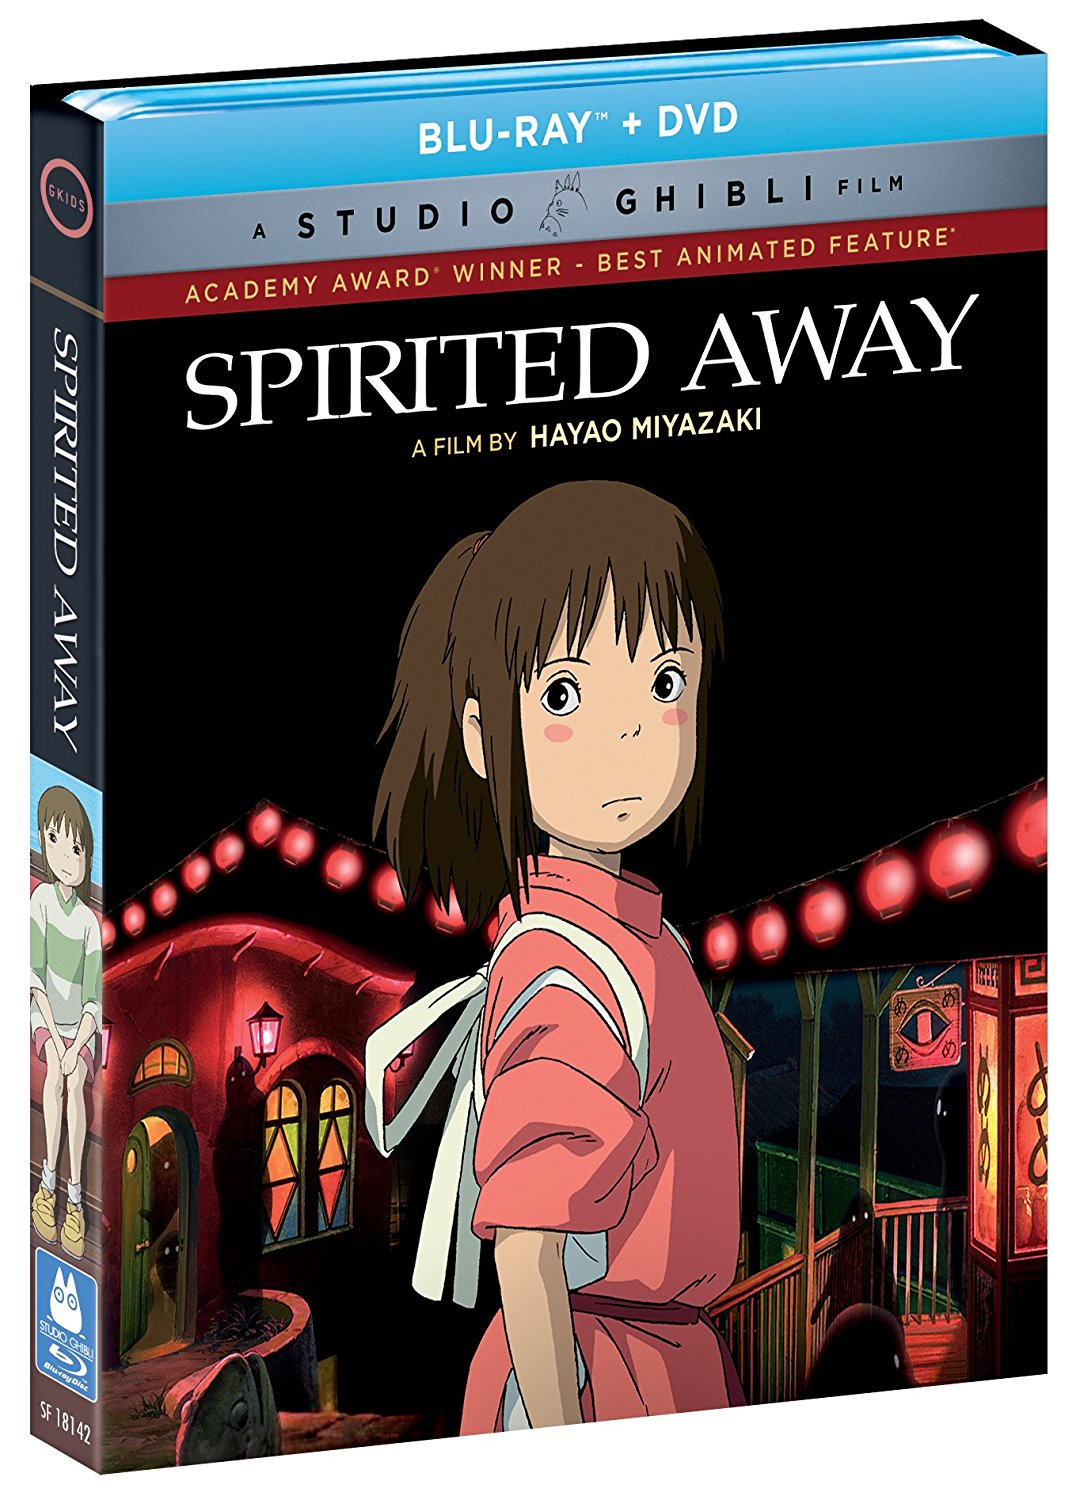 Spirited Away Blu-ray/DVD